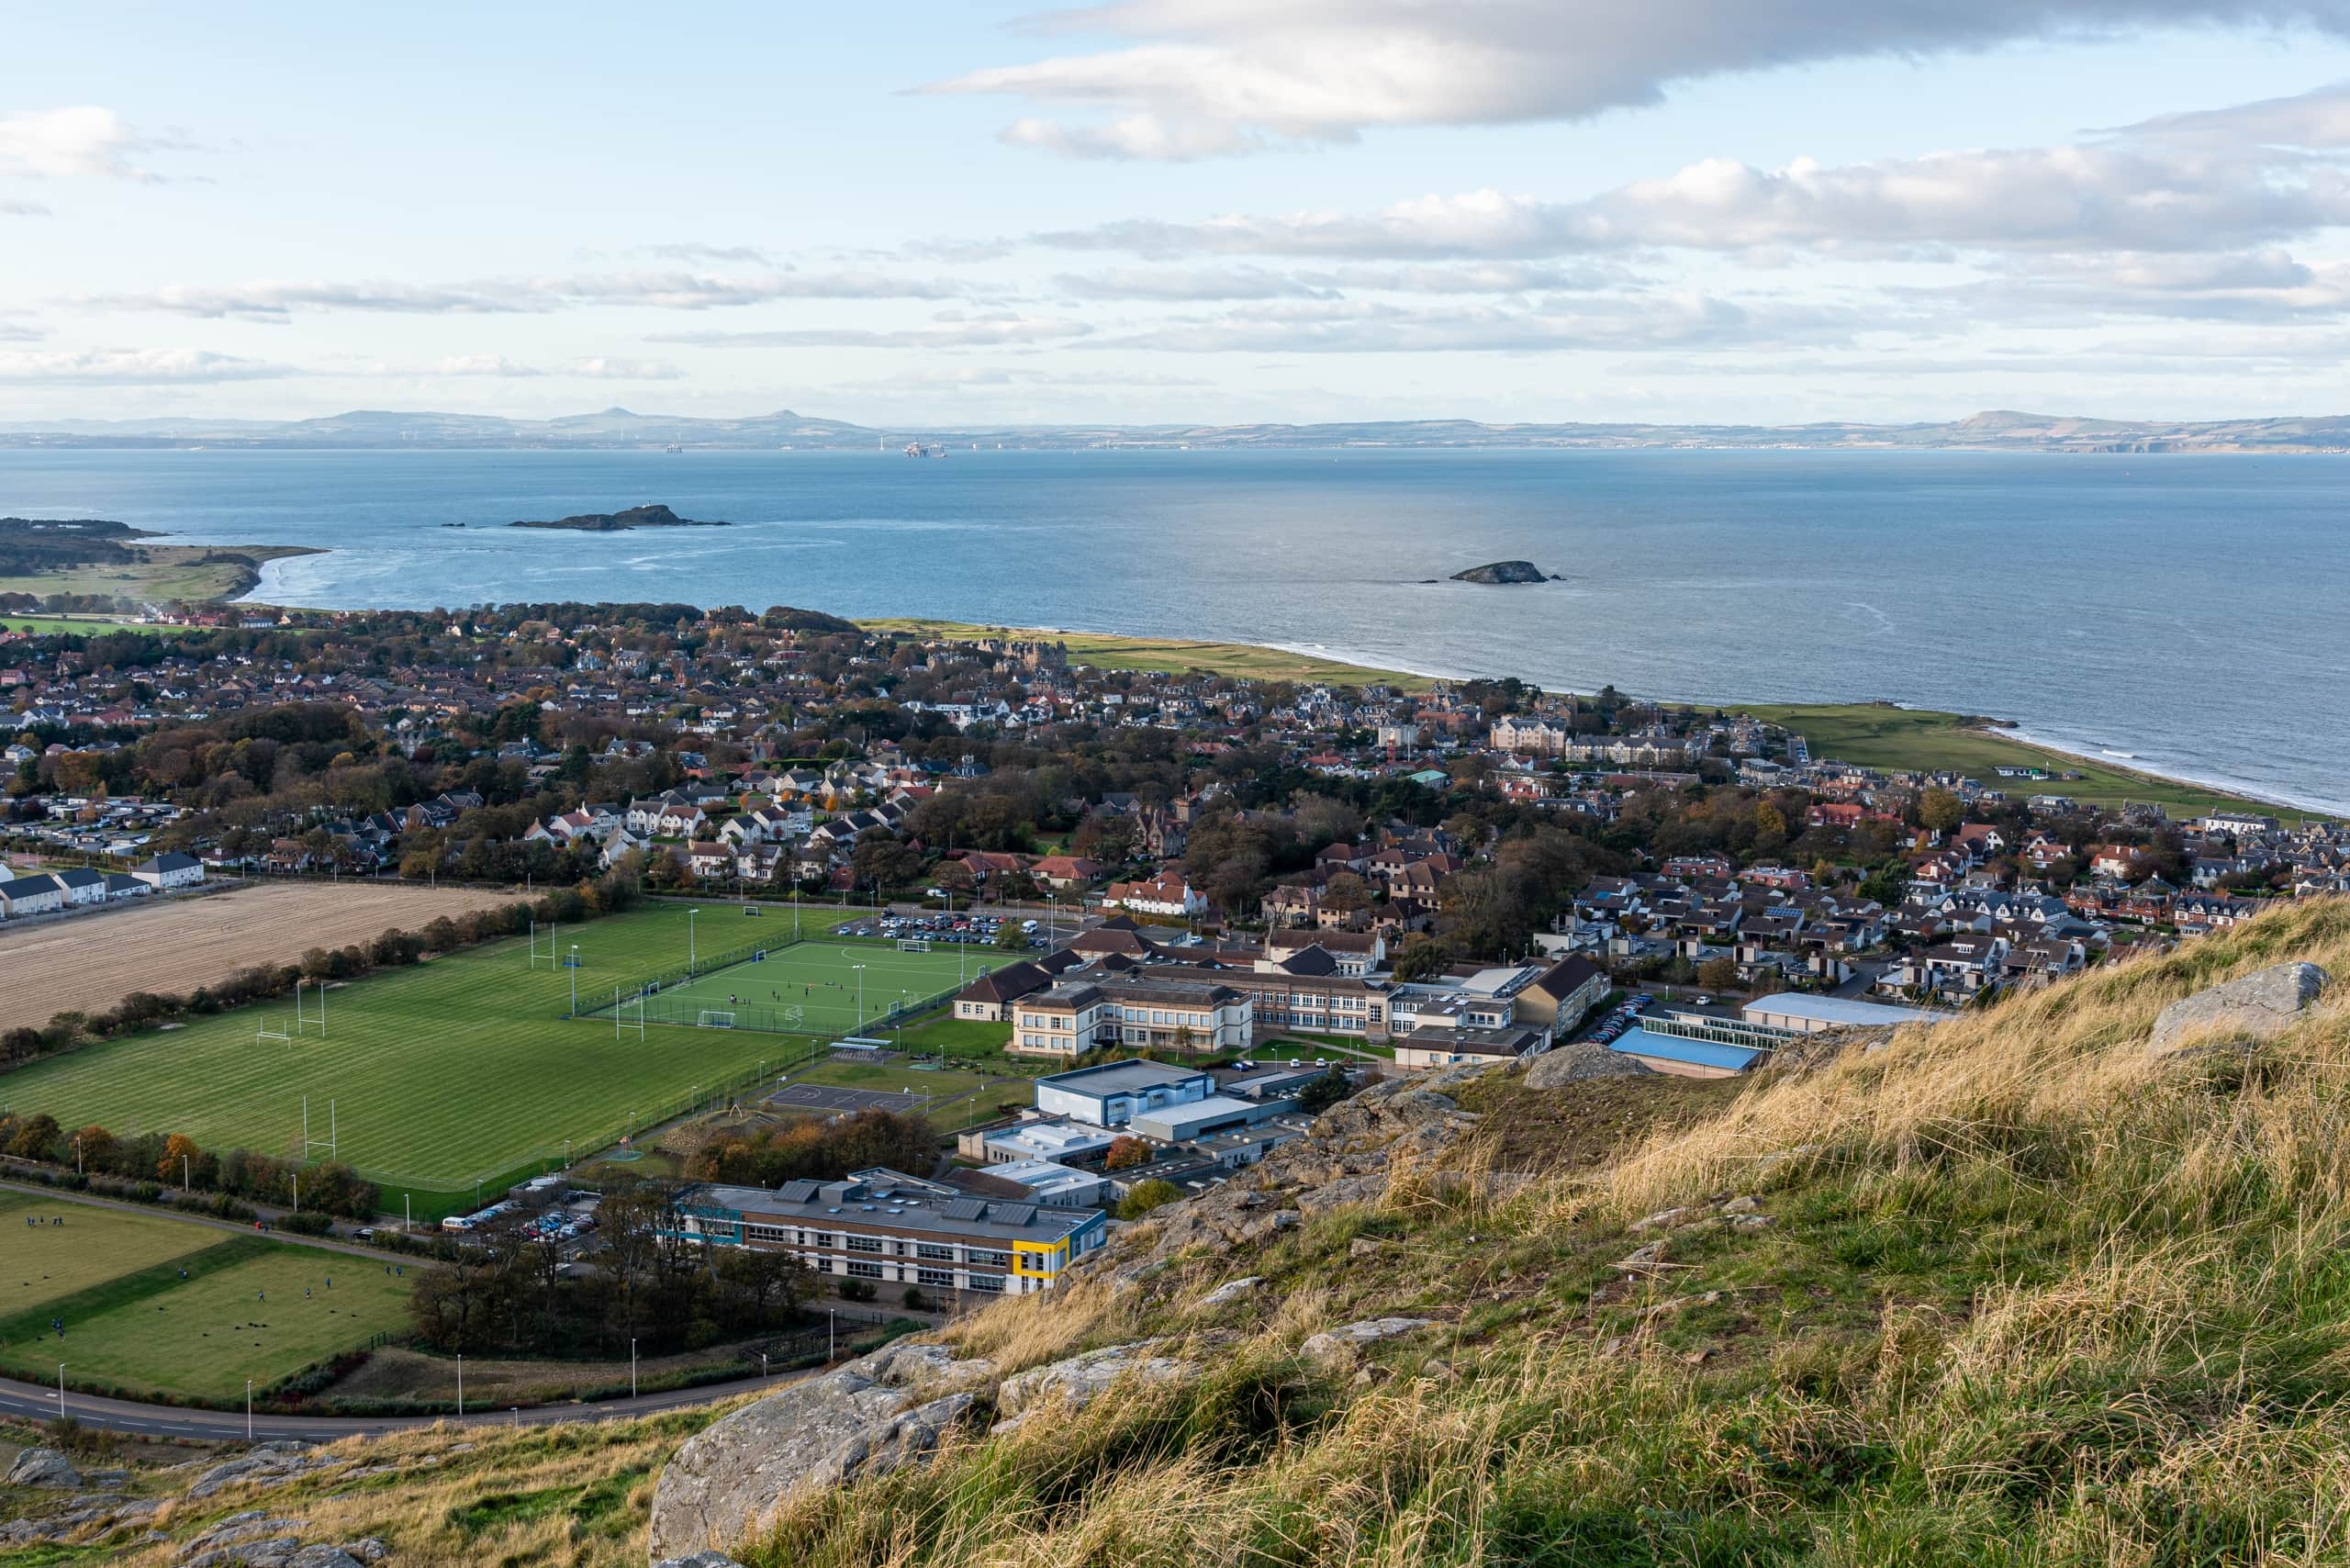 View towards the town from North Berwick Law | f/11 1/50sec ISO-160 28mm  | ILCE-7RM3